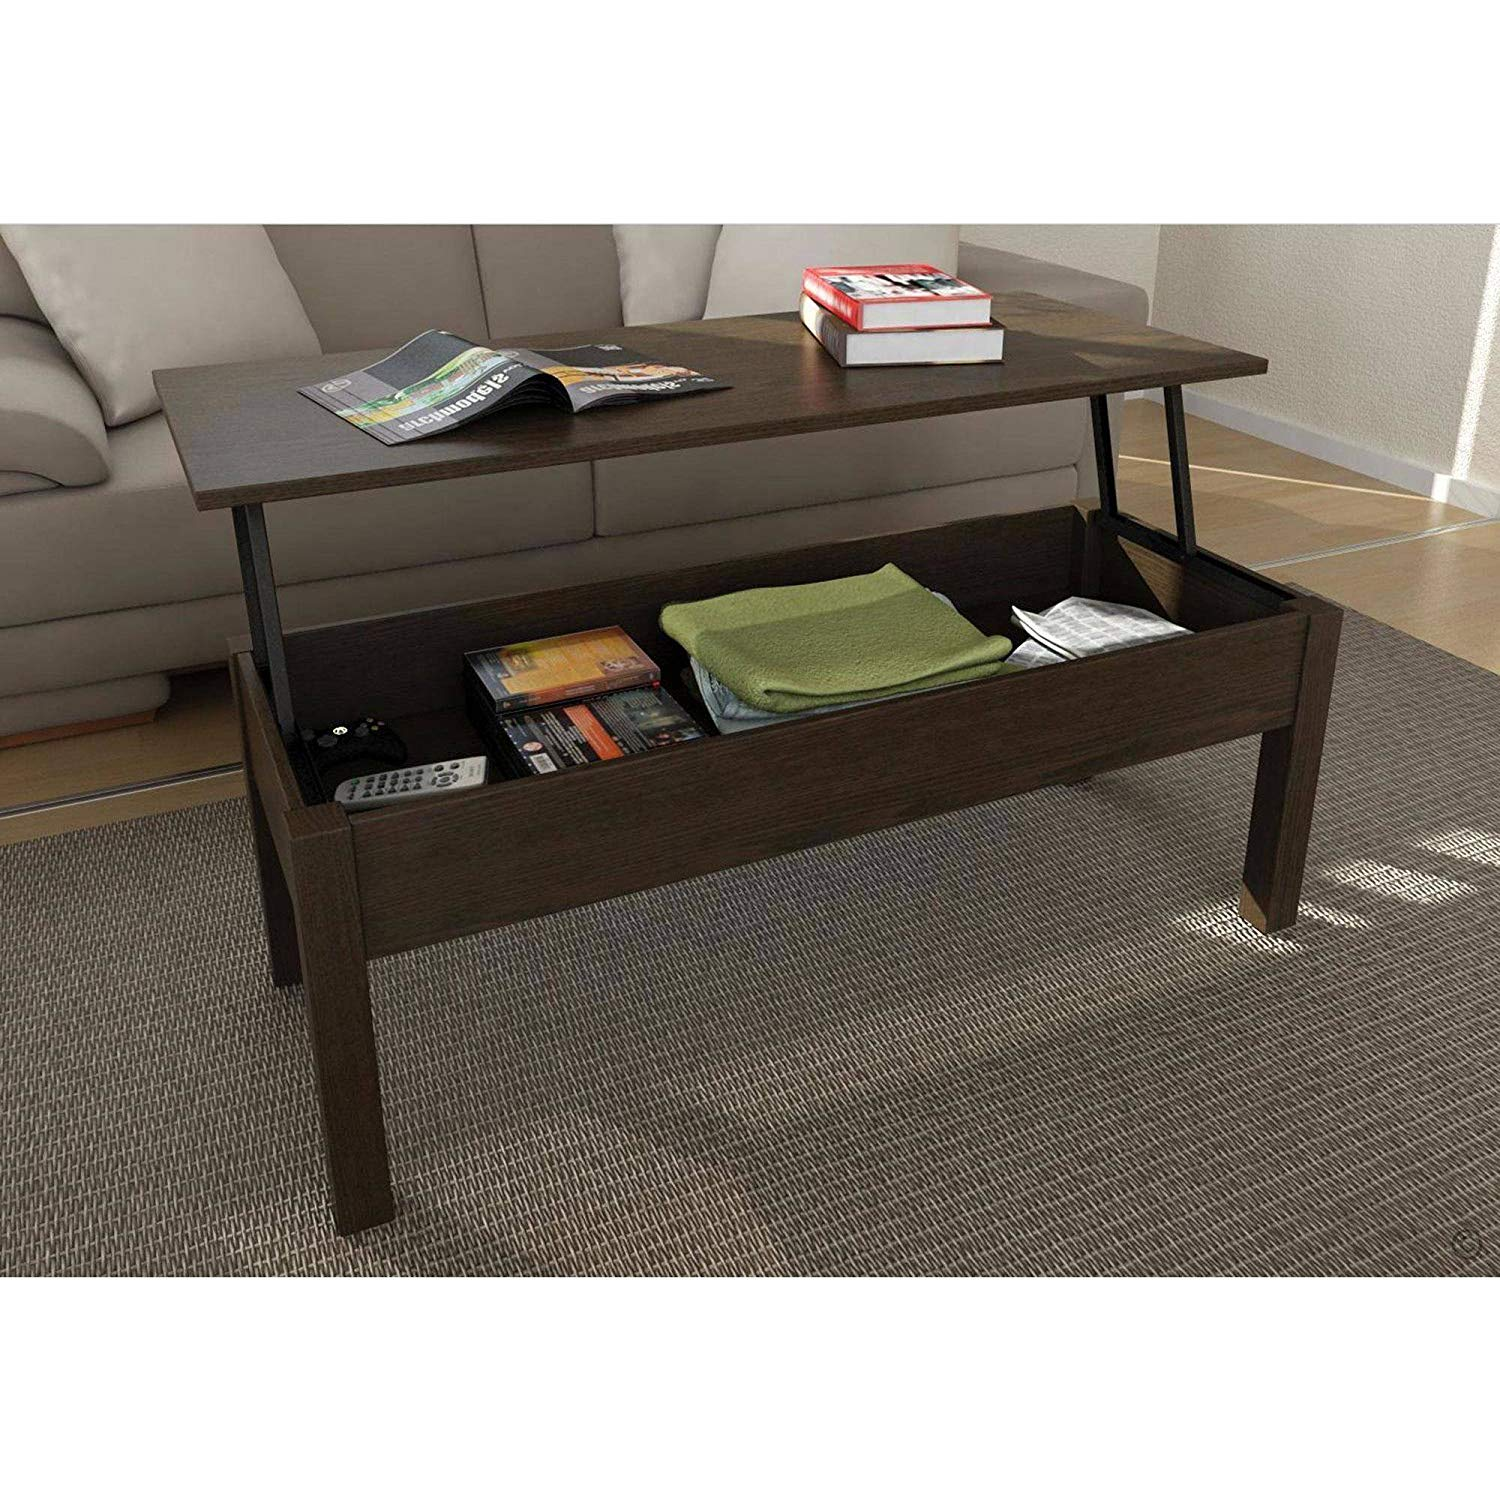 mainstay lift top coffee table brown kitchen dining mainstays accent marble grey green paint modern corner mirrored bedside cordless rechargeable lamp bbq small decorative chest